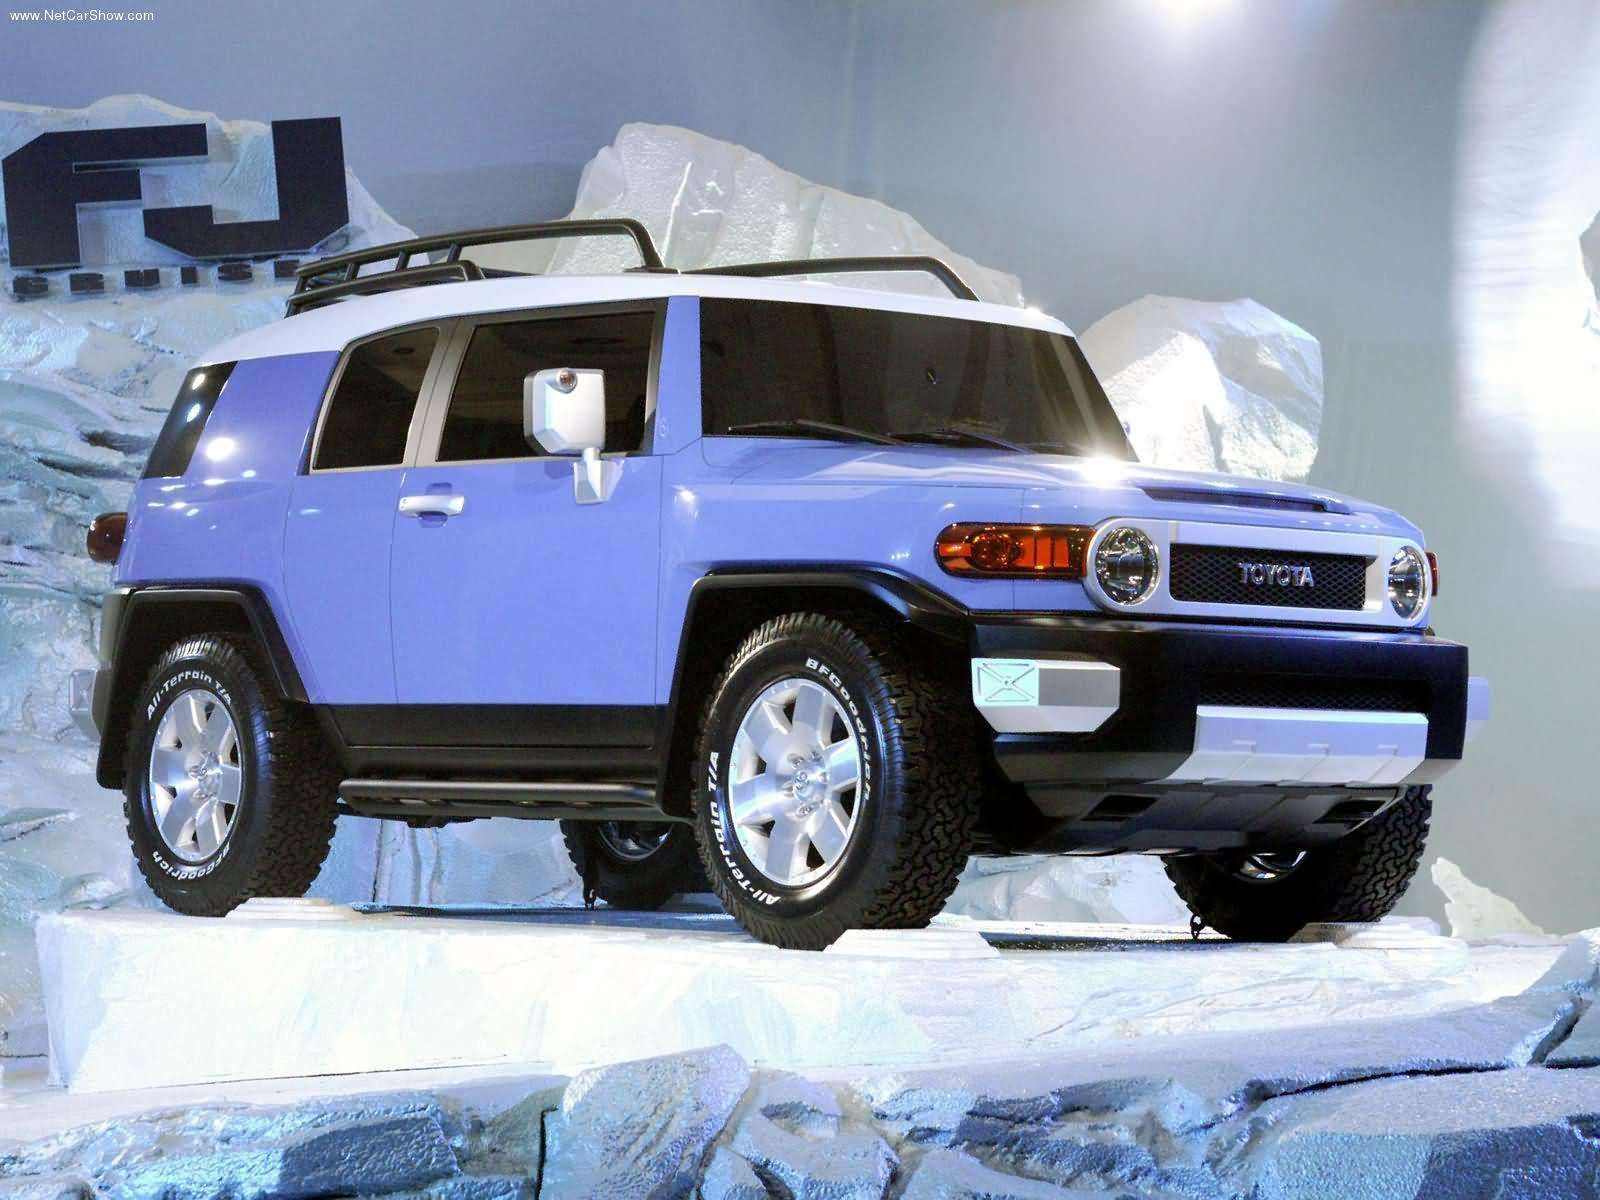 toyota images toyota fj cruiser 2007 hd wallpaper and background photos 327912. Black Bedroom Furniture Sets. Home Design Ideas